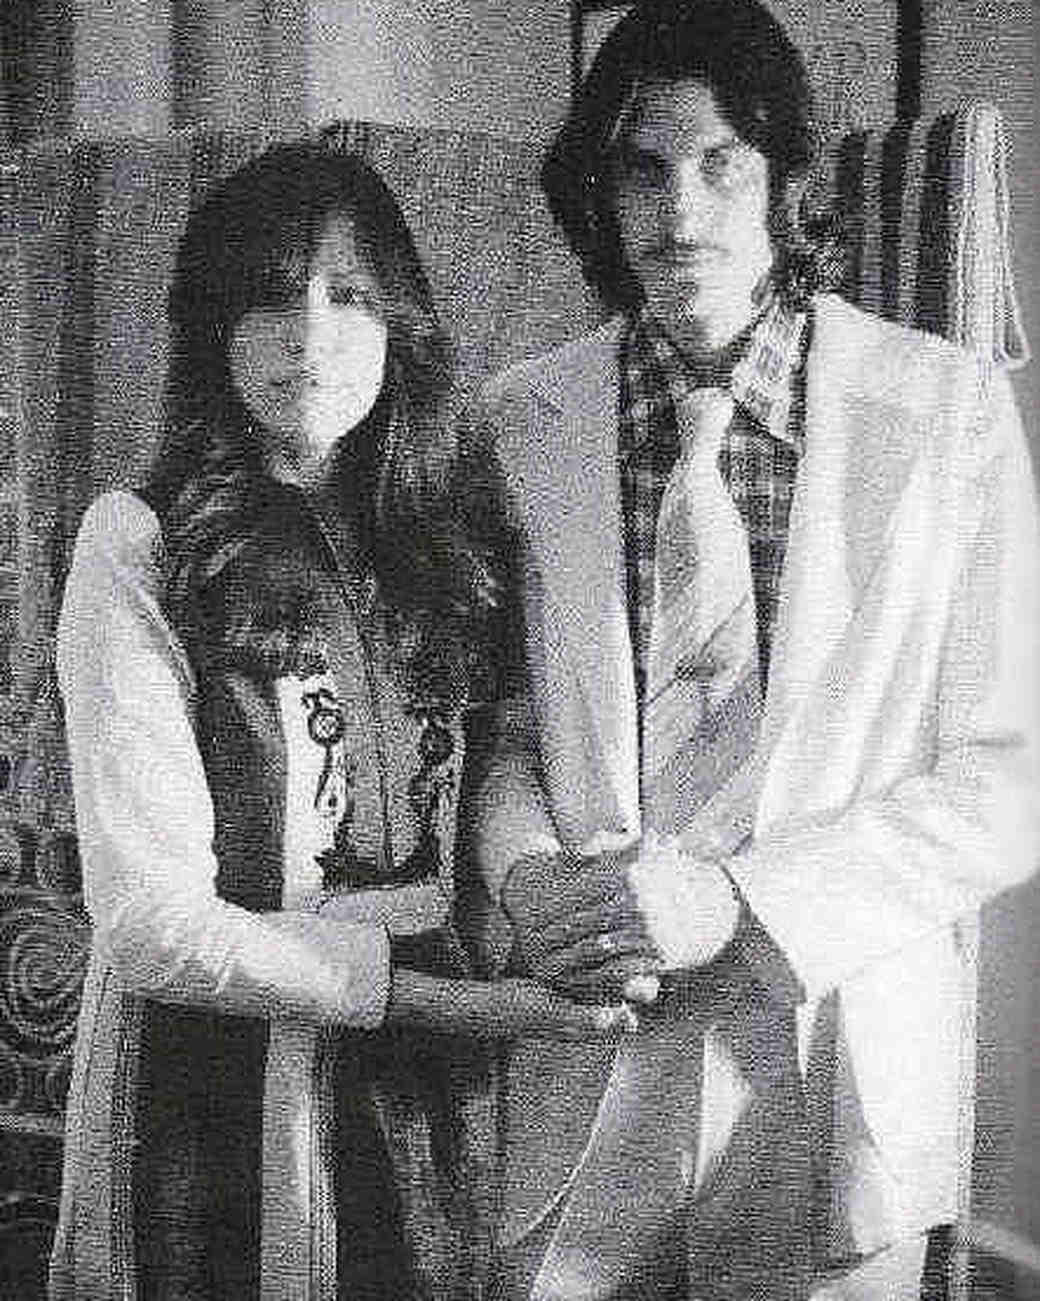 Carly Simon and James Taylor Wedding Photo